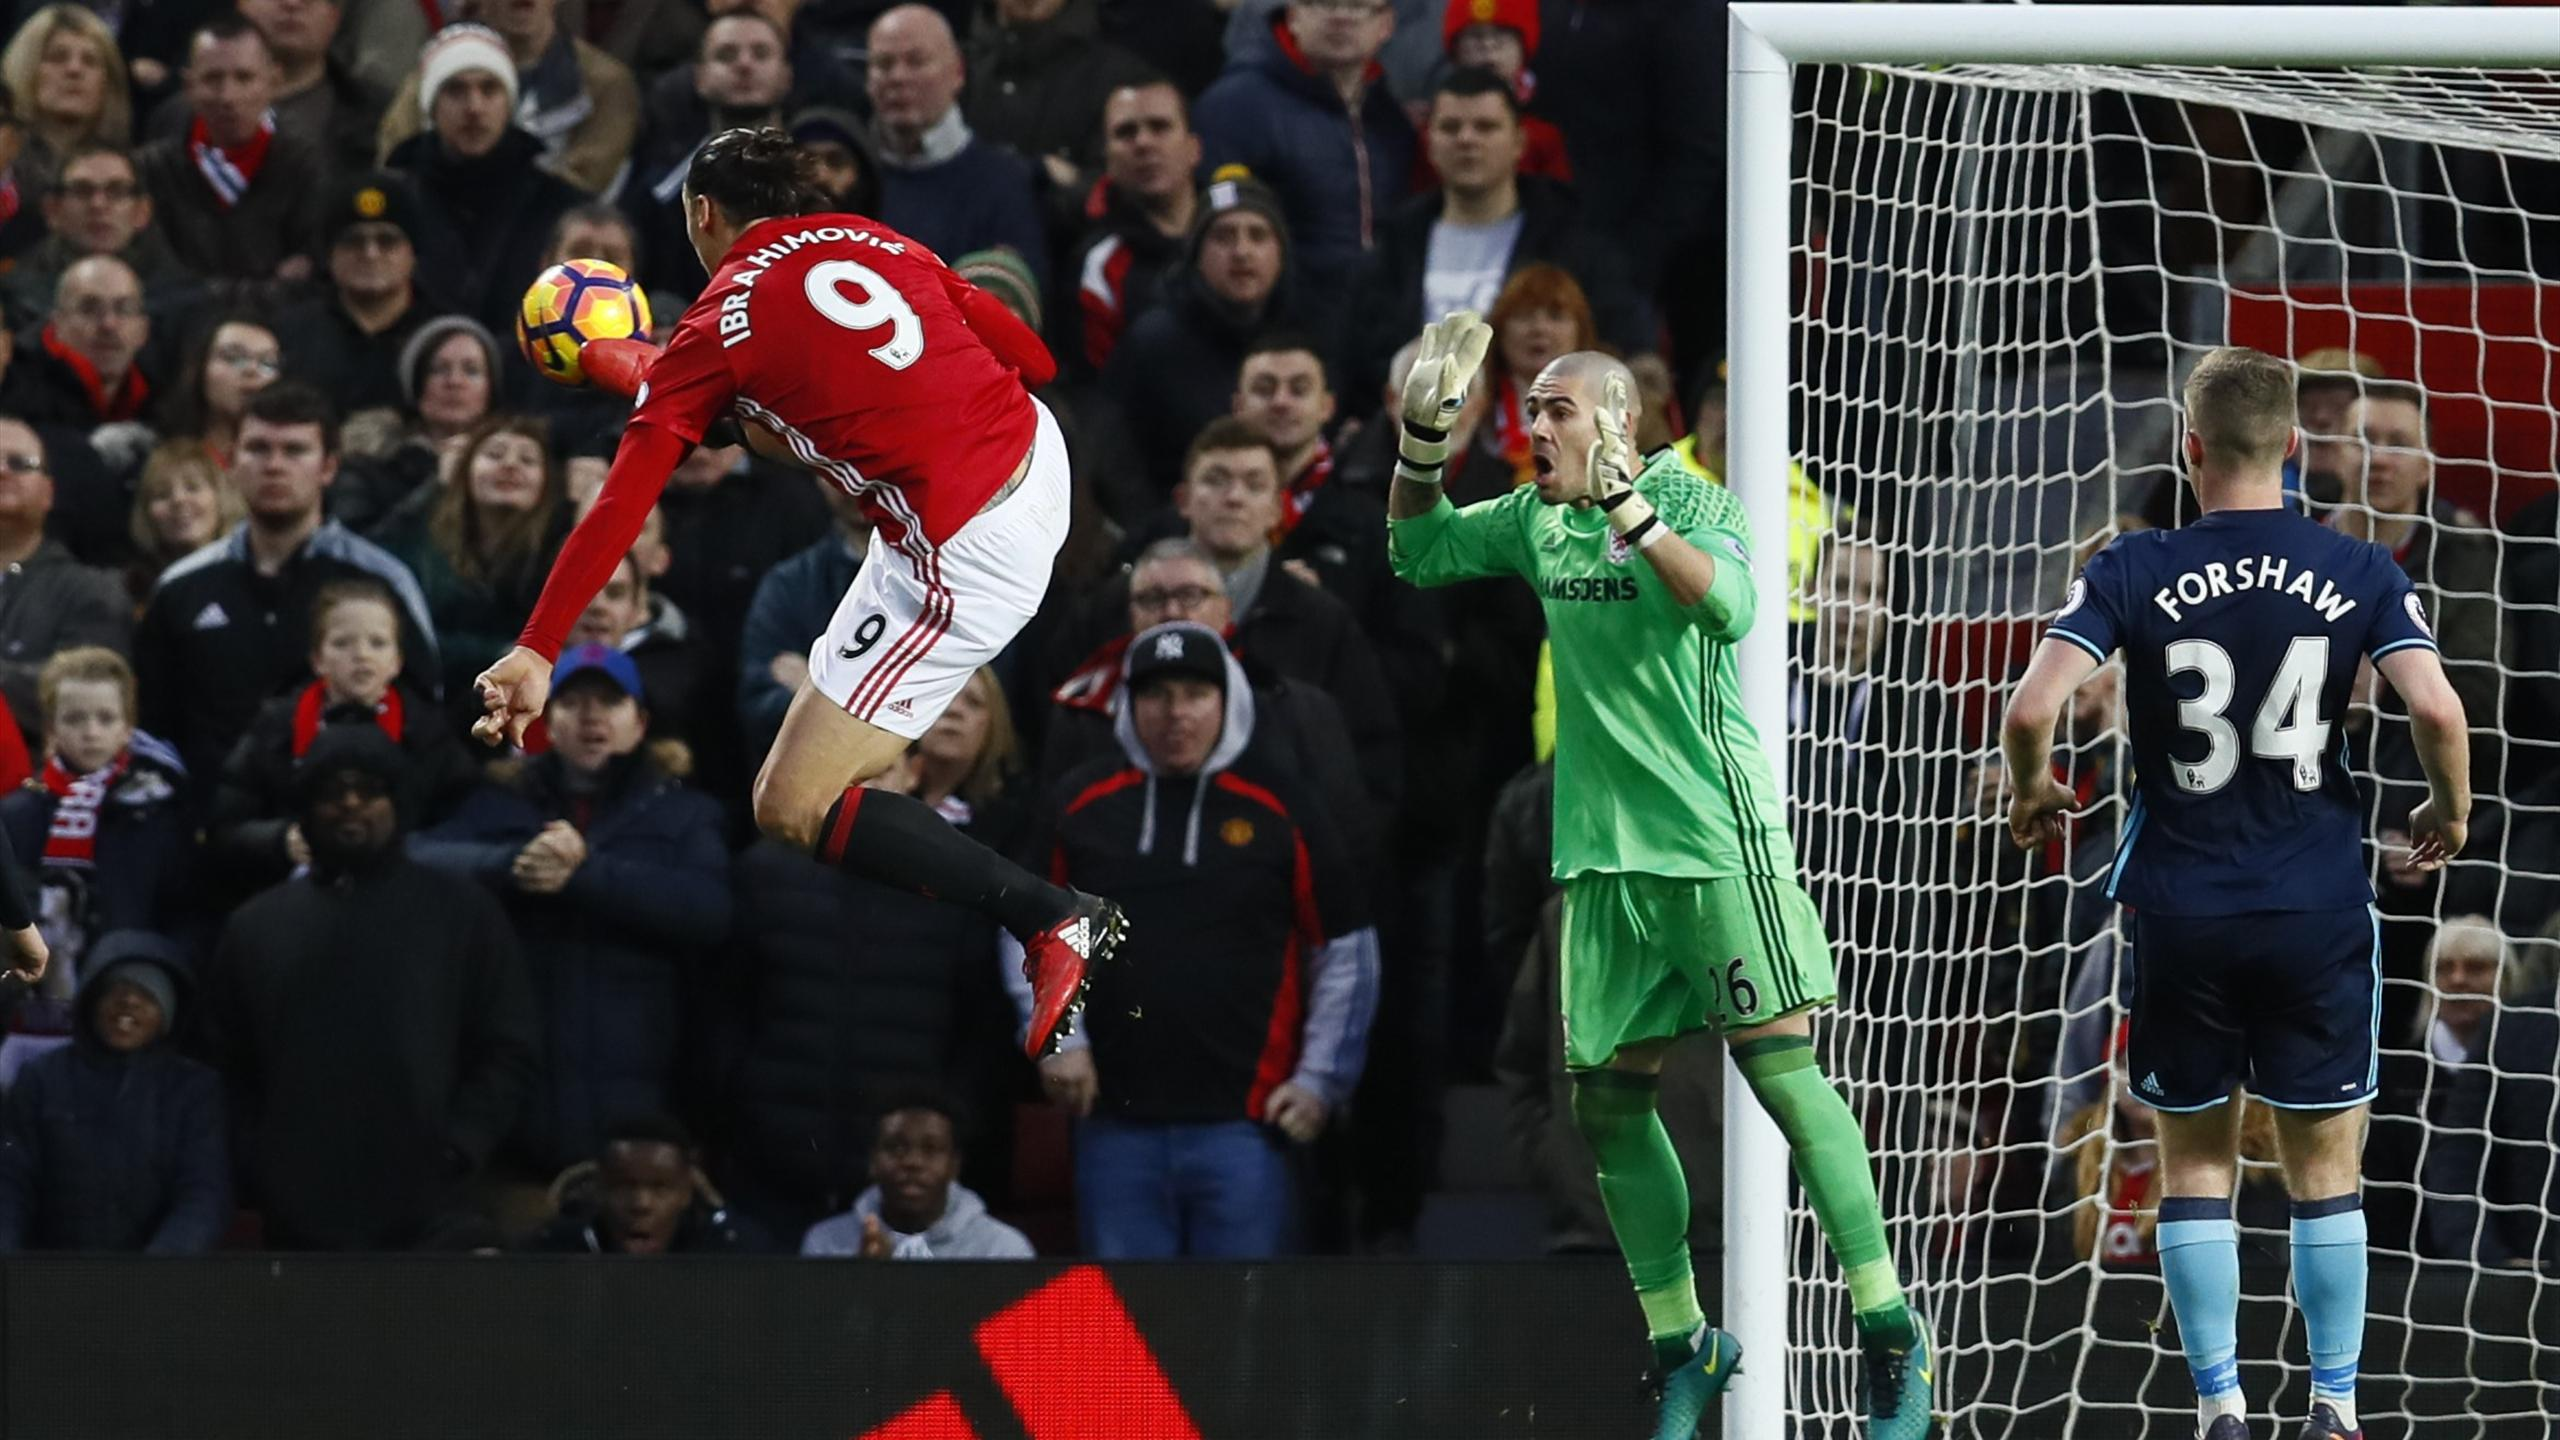 Zlatan Ibrahimovic has this goal disallowed against Middlesbrough